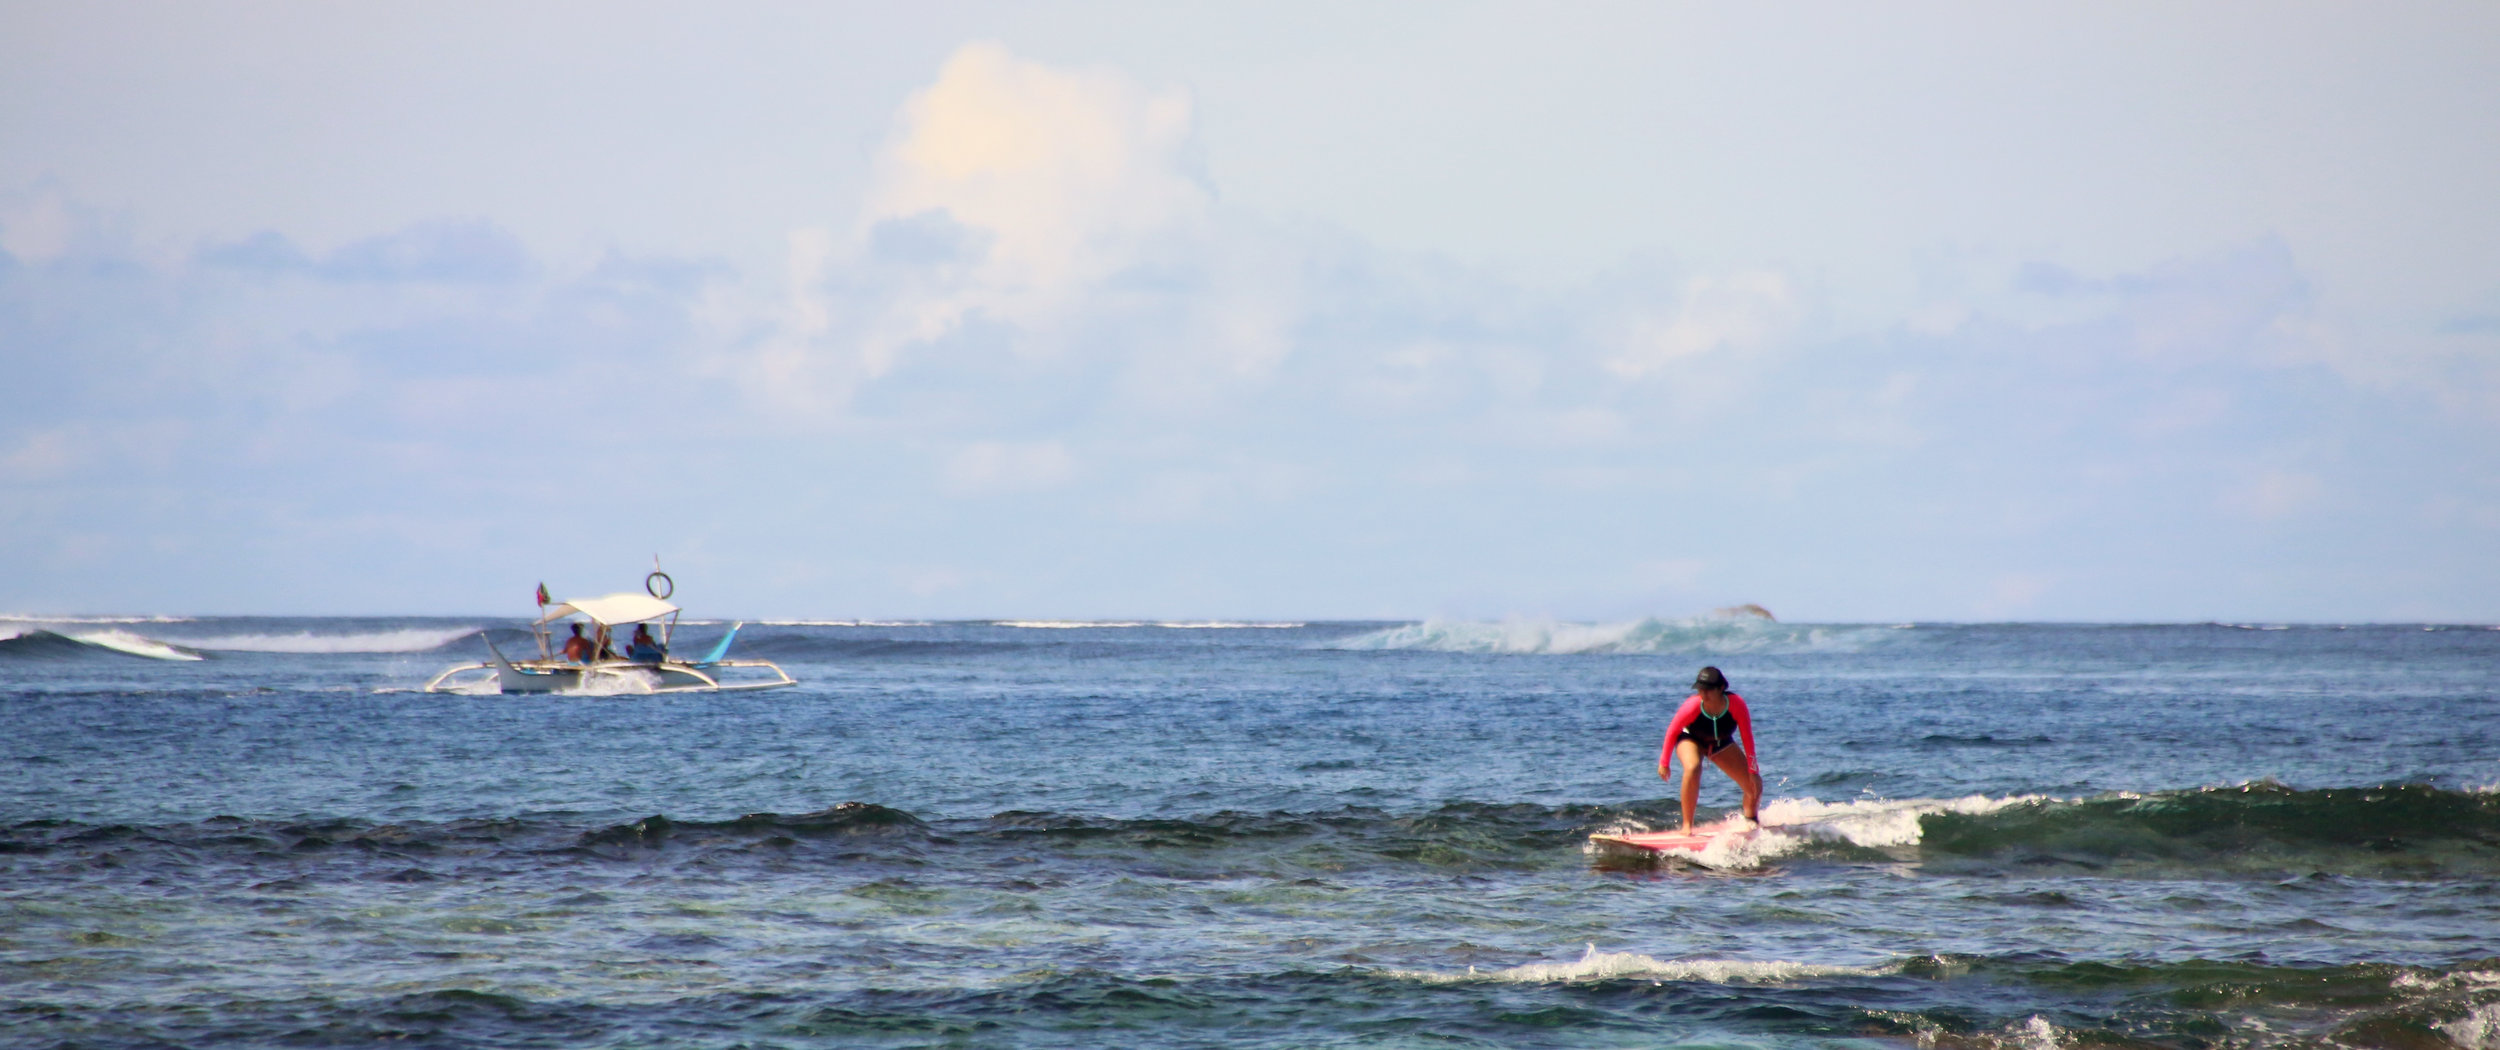 Don't mind the oh so cute waves I'm on, look behind me - it's pumping! Photo by Alex Lopez.